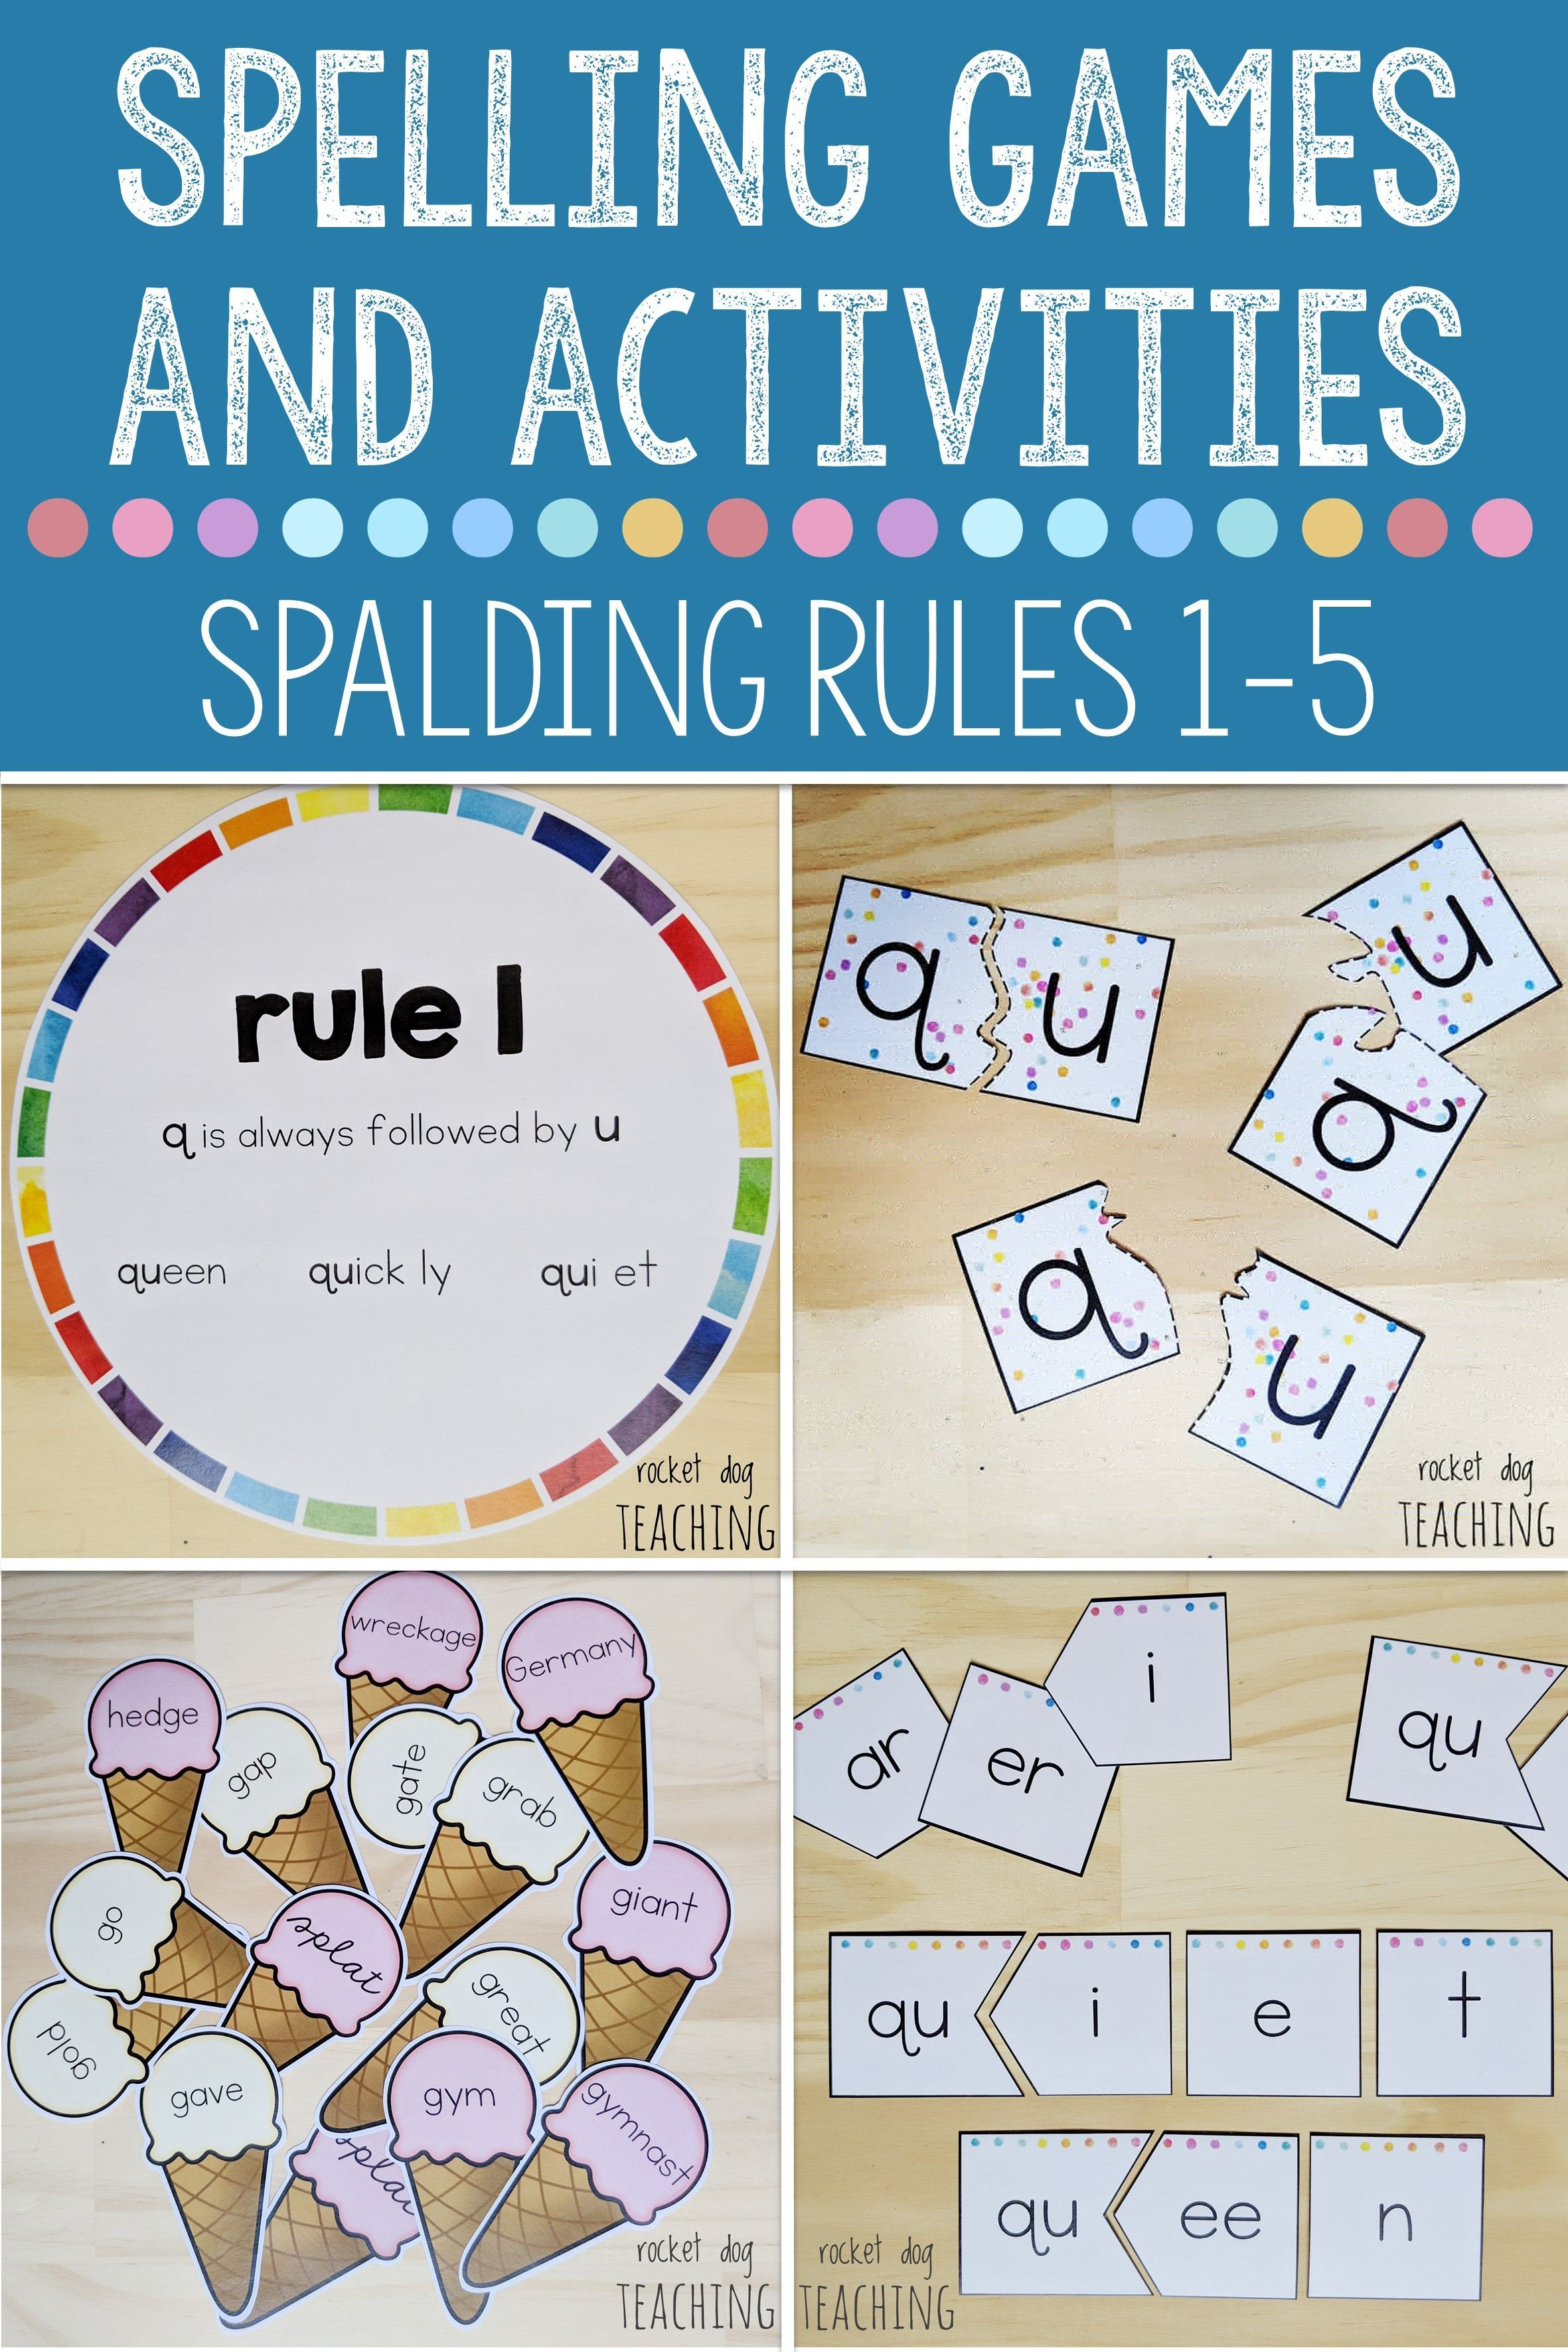 Activities And Games To Support The Learning Of Spalding Rules 1 To 5 Easily Used In Any Spelling Program F Spelling Rules Spelling Program Teaching Spelling [ 3543 x 2362 Pixel ]